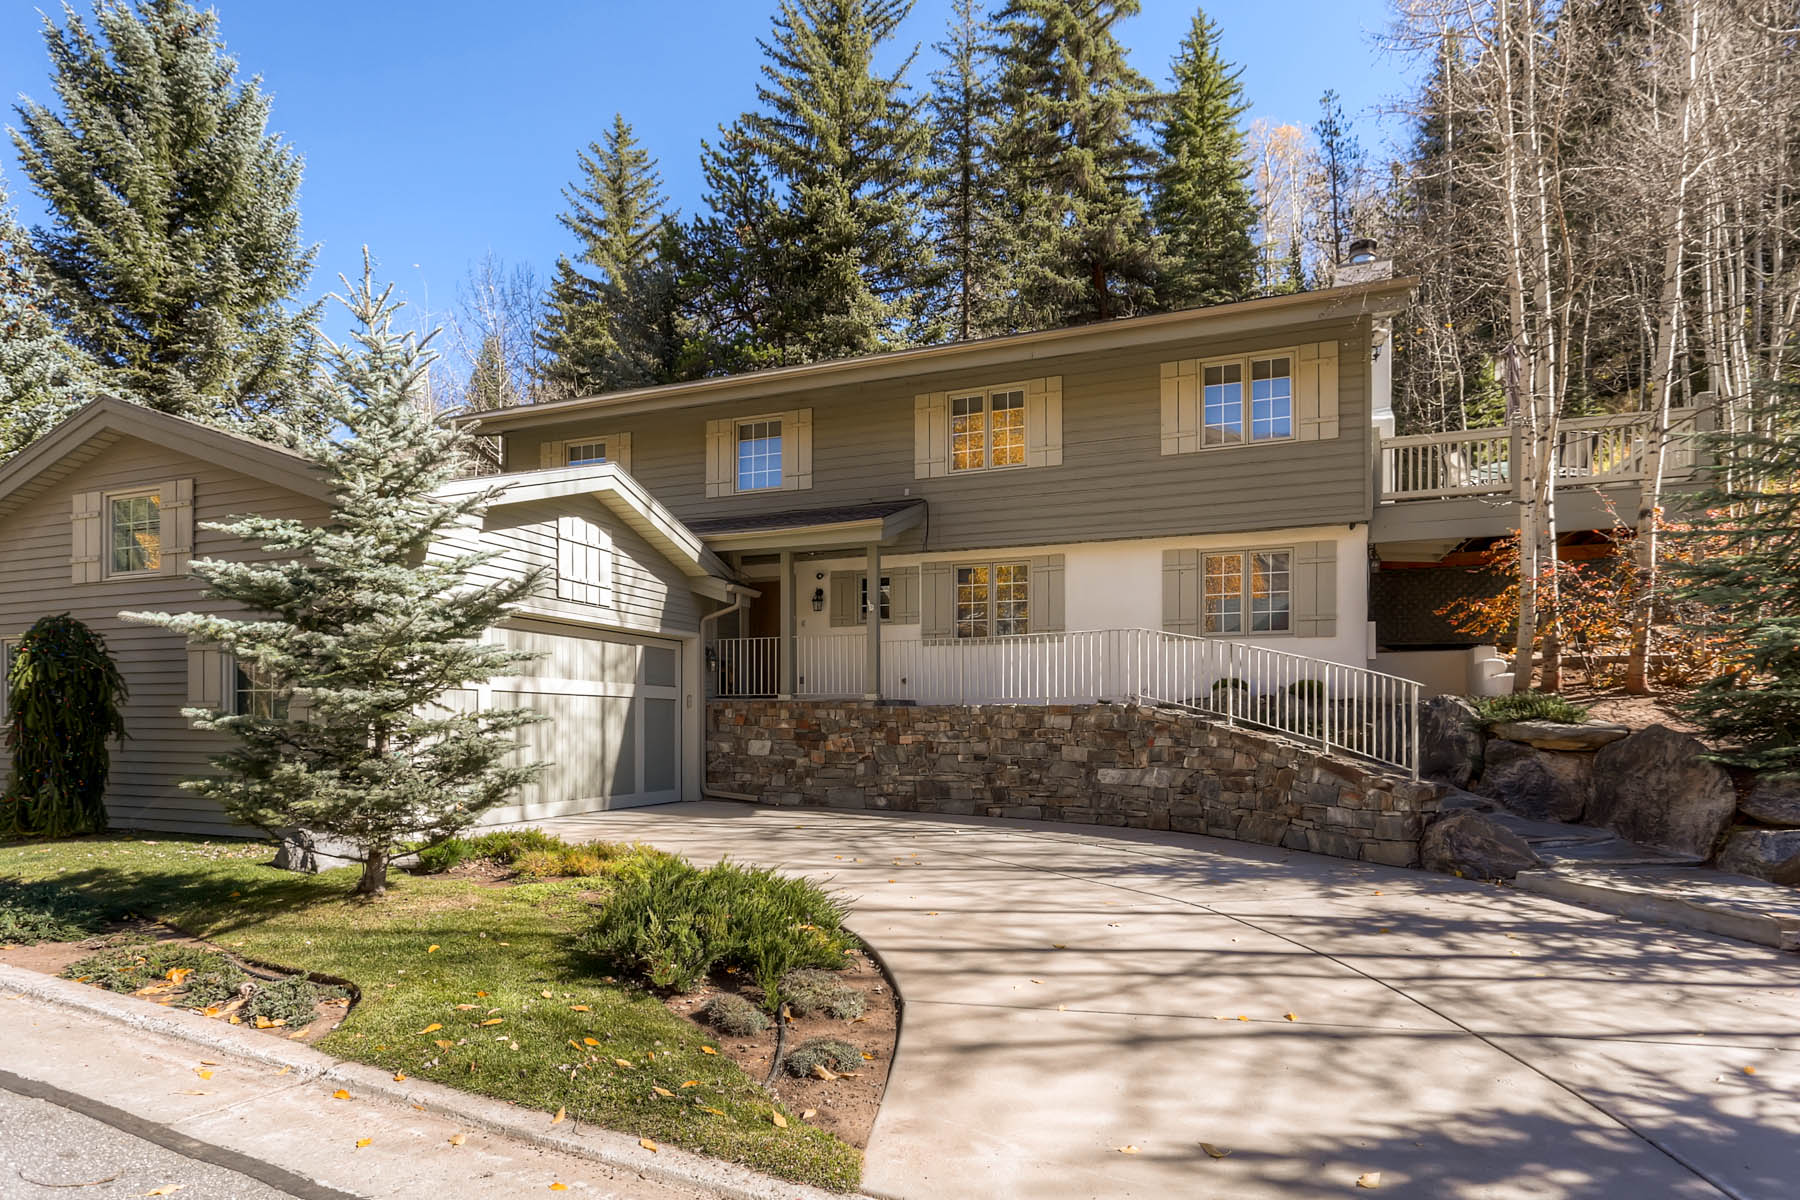 Single Family Home for Sale at Incredible West Vail Location 1868 W. Gore Creek Dr Vail, Colorado 81657 United States